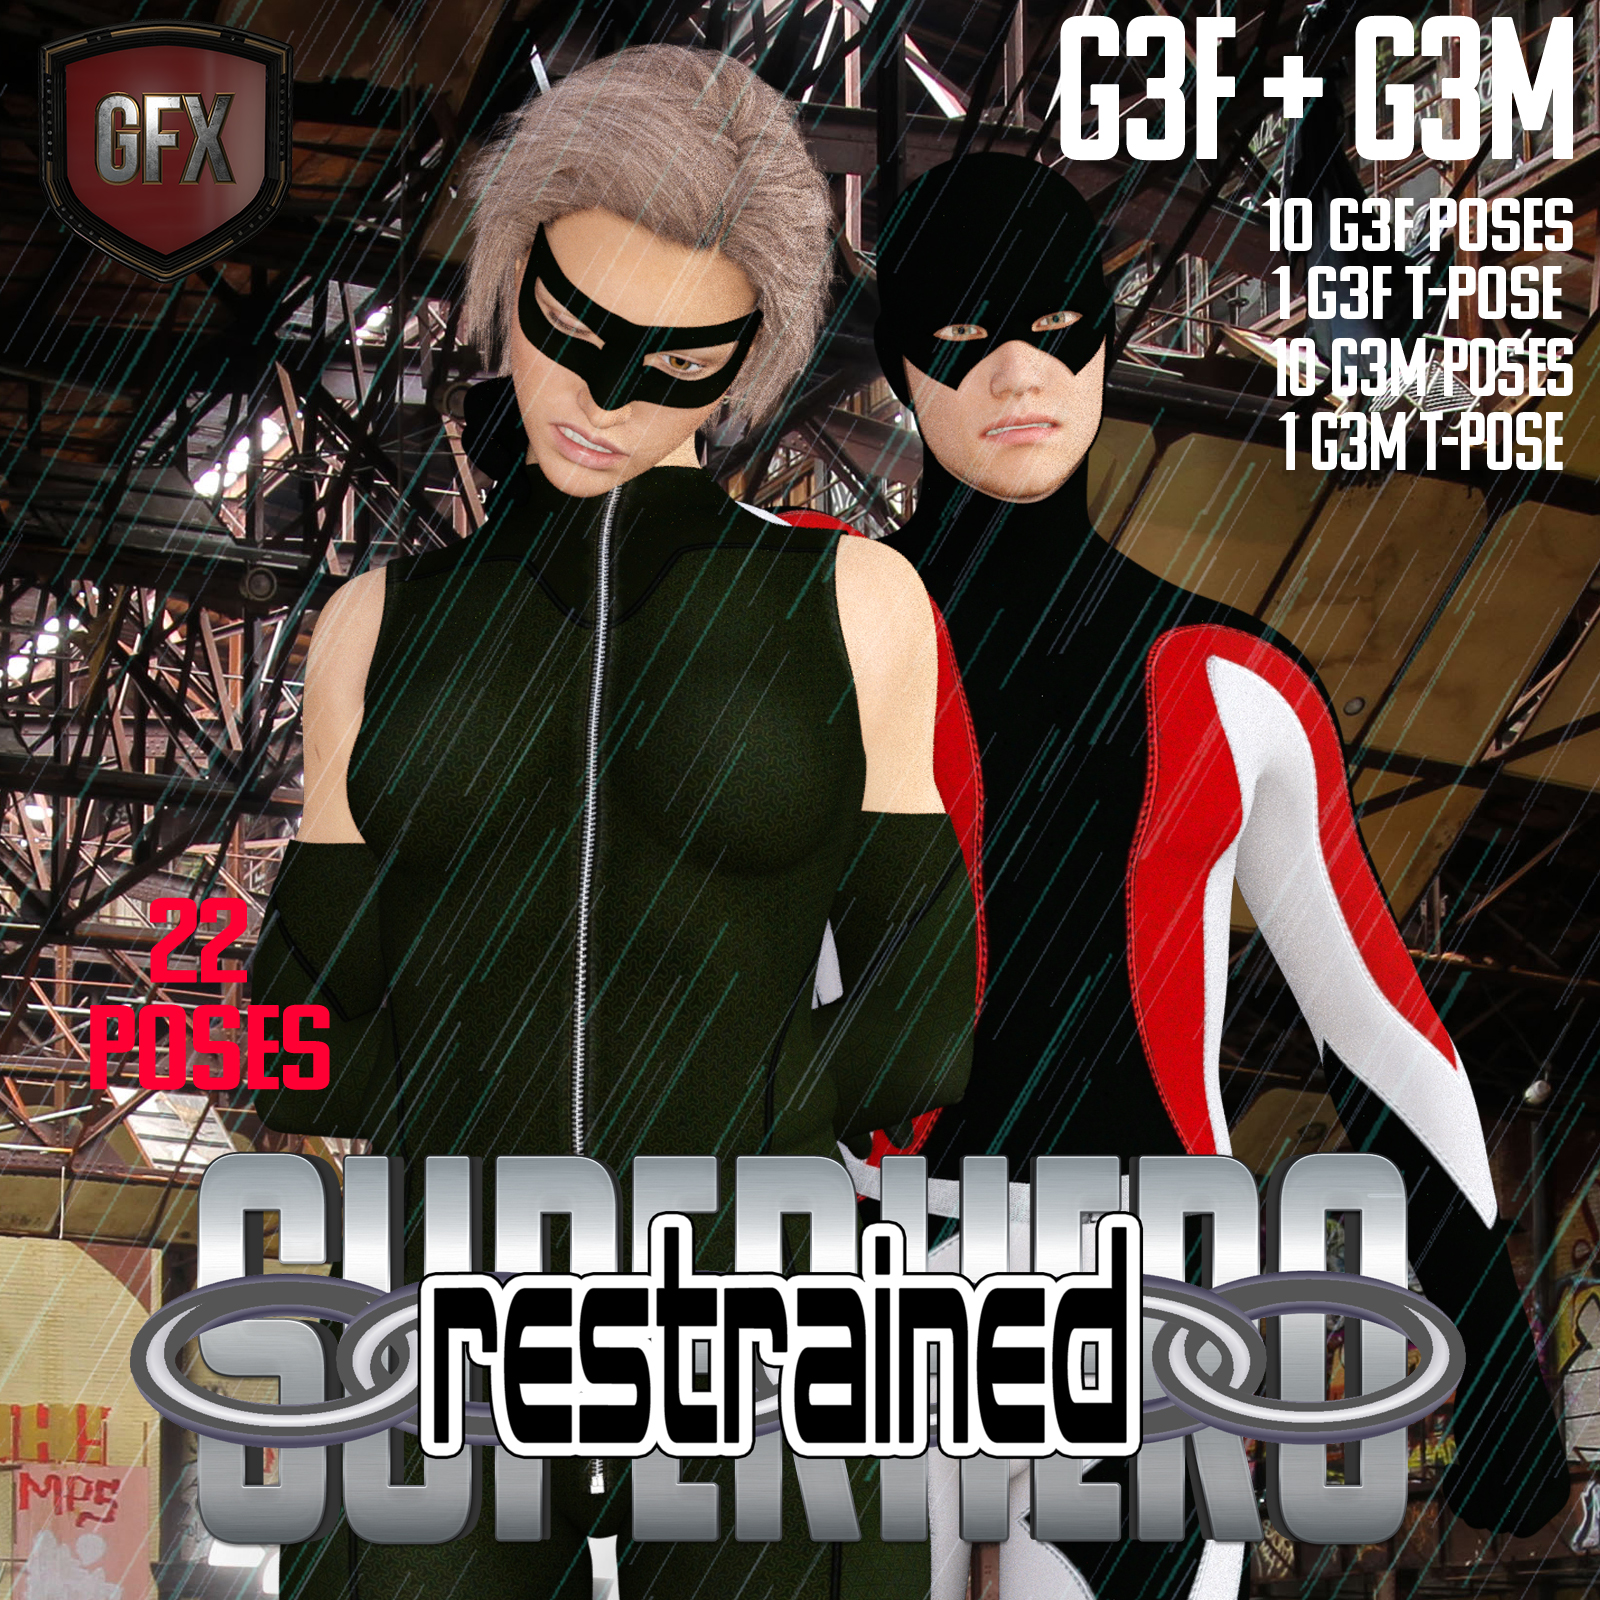 SuperHero Restrained for G3F and G3M Volume 1 by GriffinFX